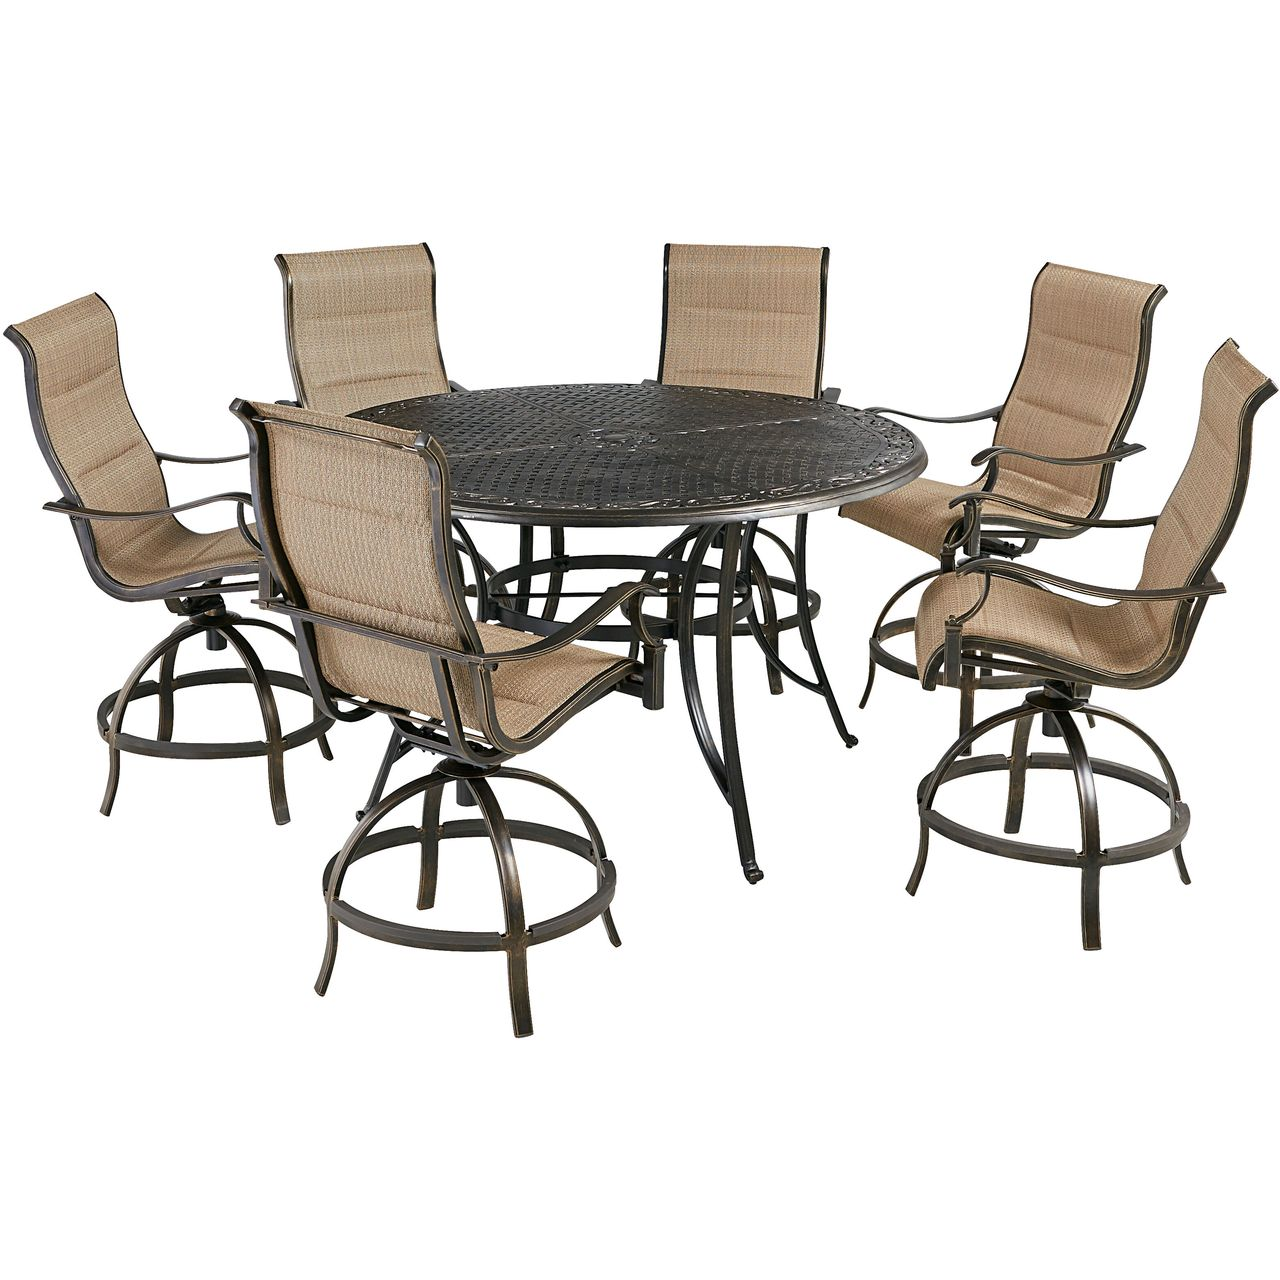 """Hanover Traditions 7-Pc 56"""" High-Dining Set With Tan Chairs"""